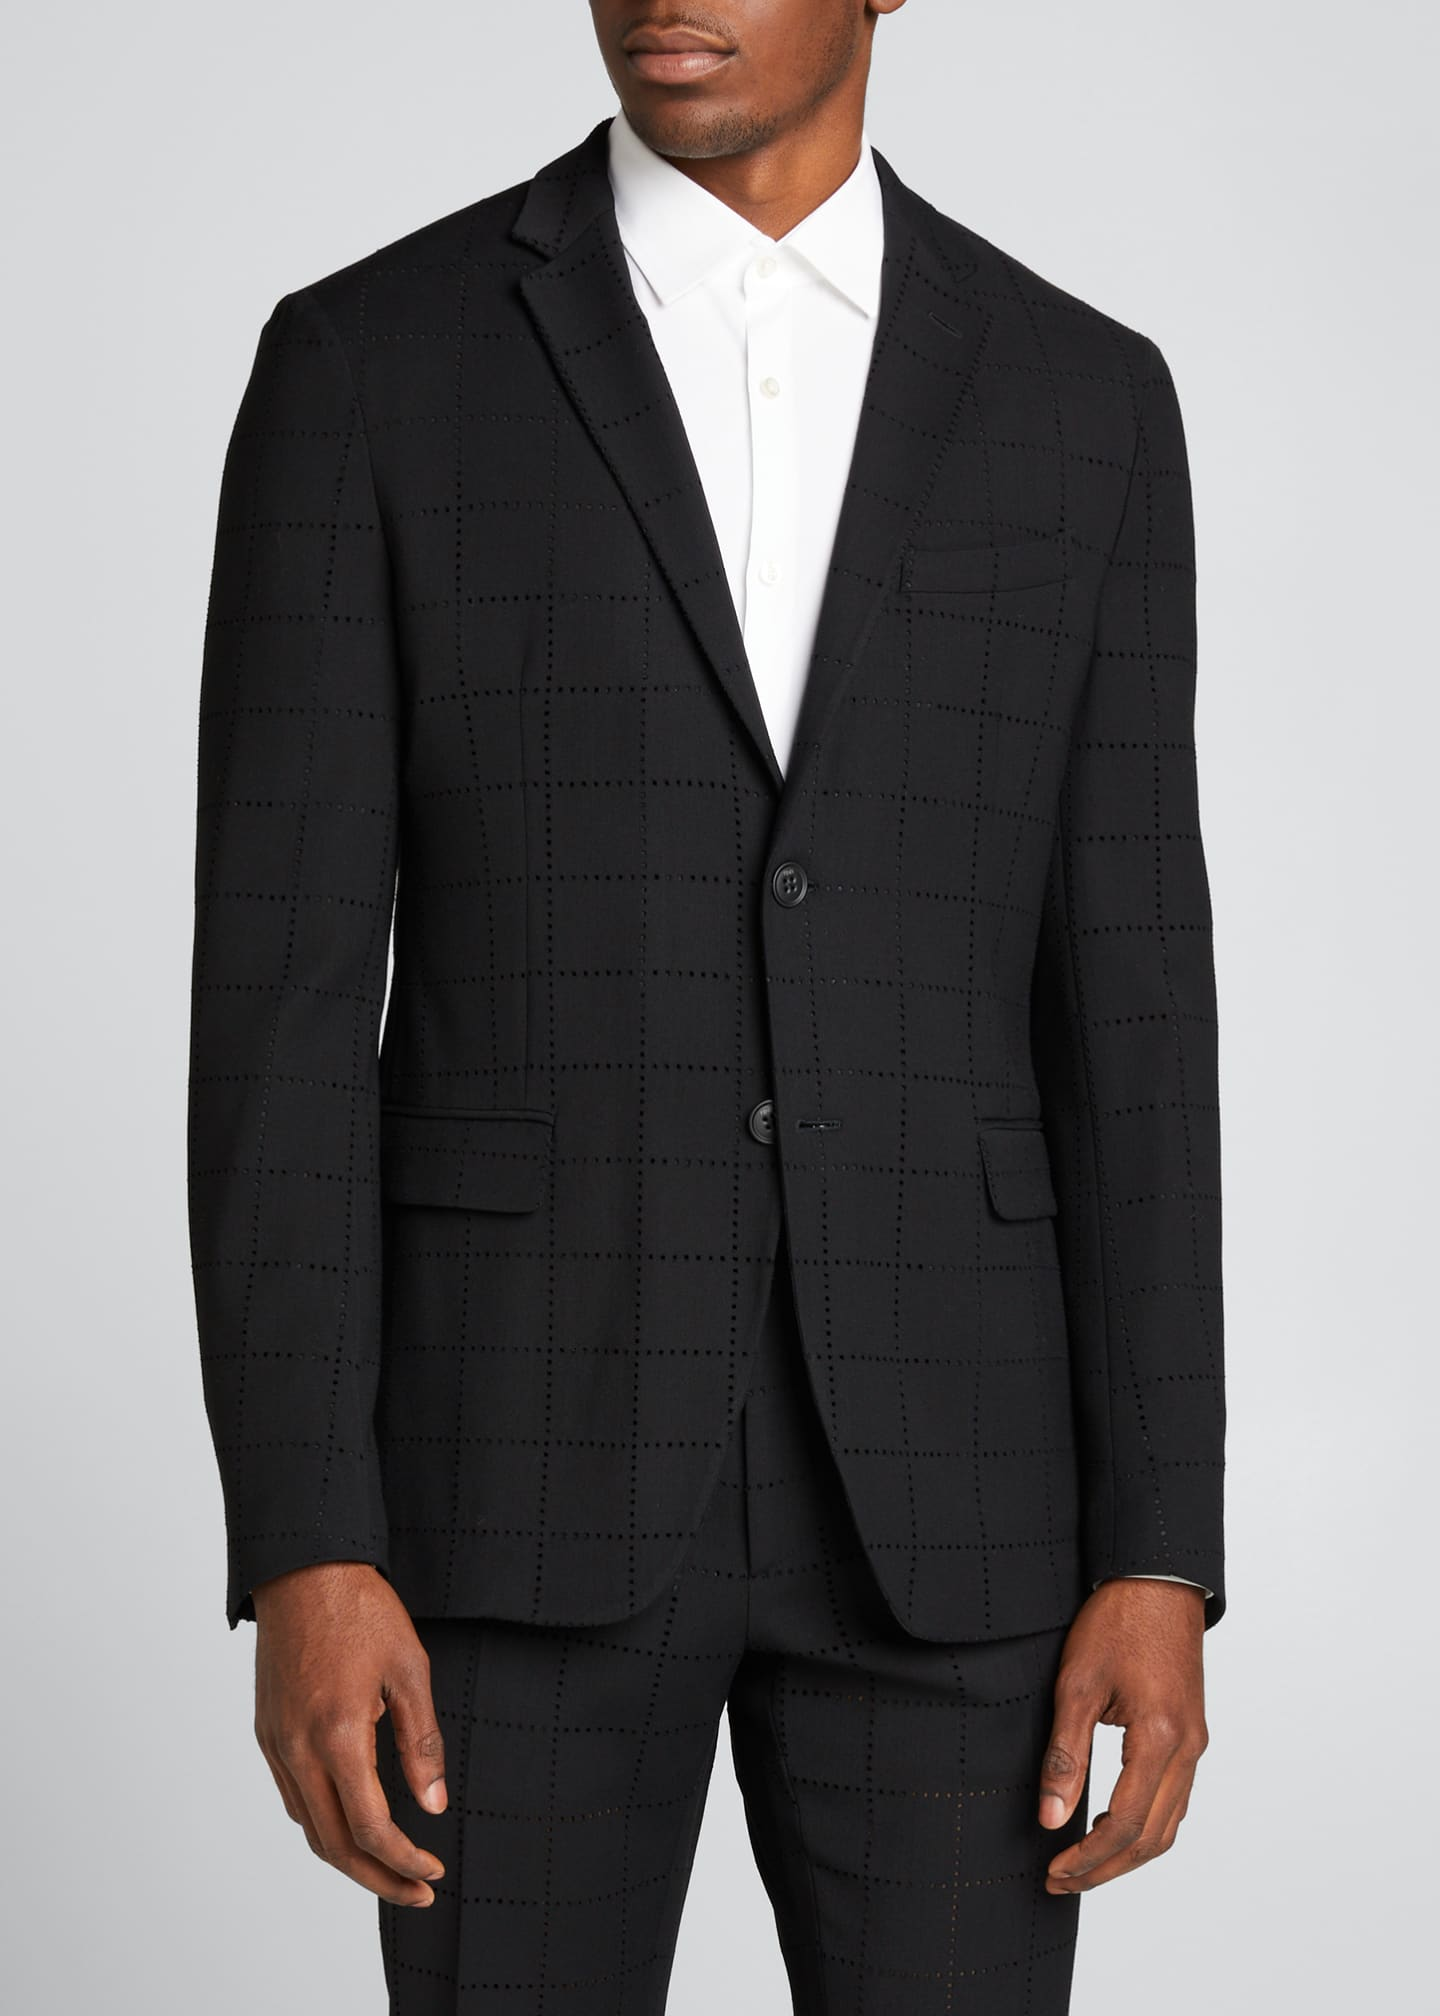 Image 3 of 5: Men's Punched Squares Suit Jacket